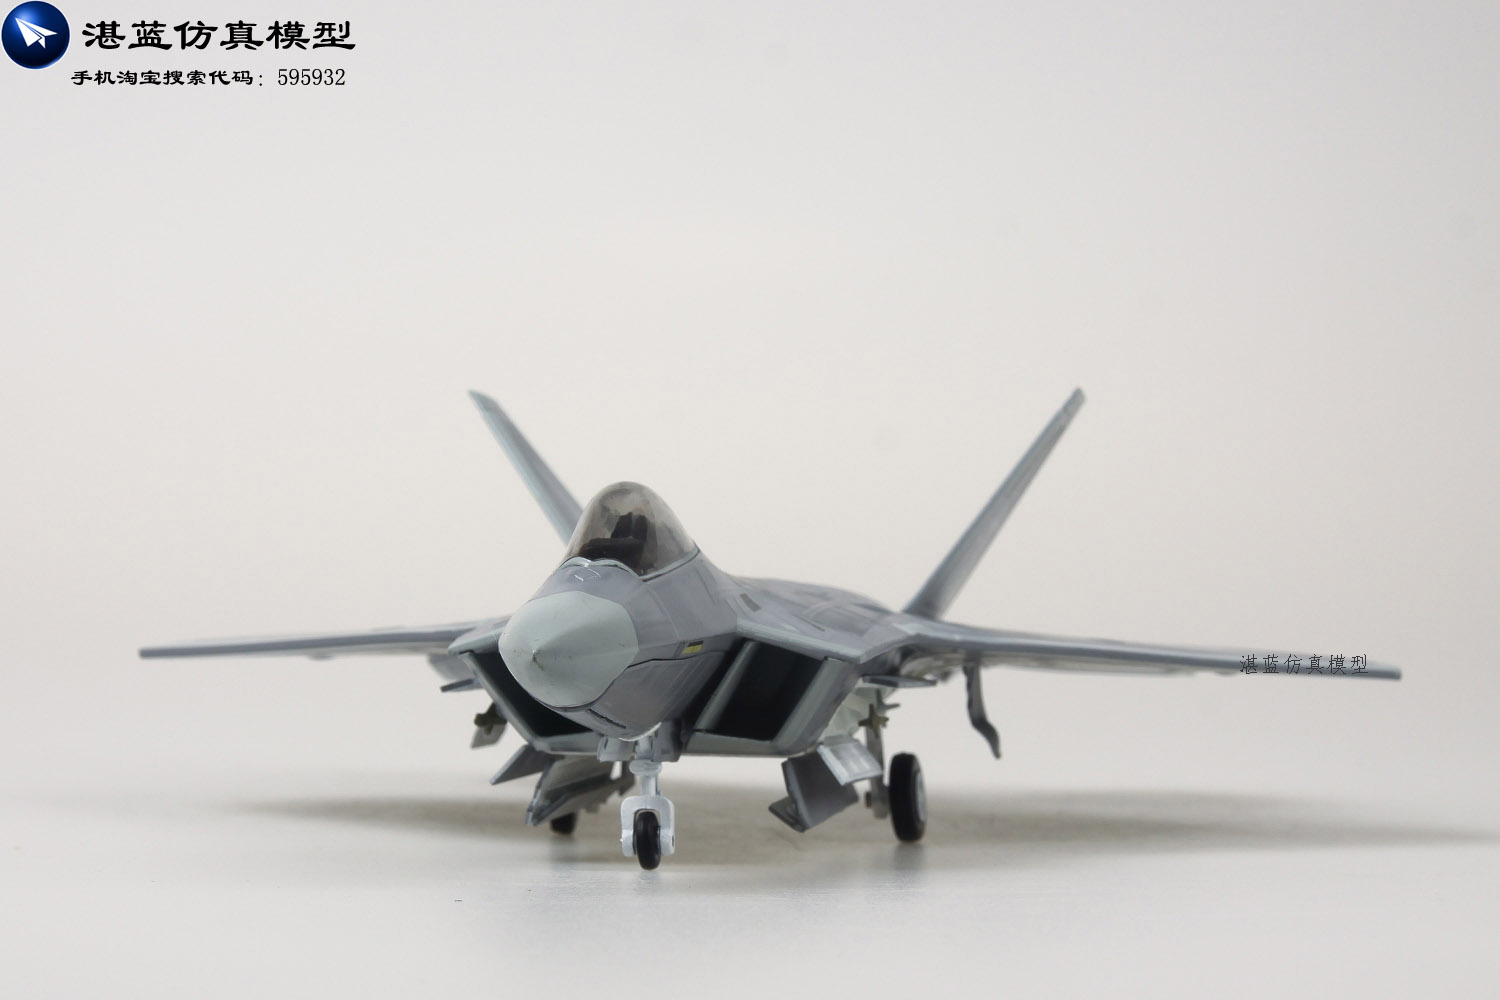 Brand New 1/72 Scale Airplane Model Toys USAF F-22 Raptor Fighter Diecast Metal Plane Model Toy For Gift/Collection/Decoration